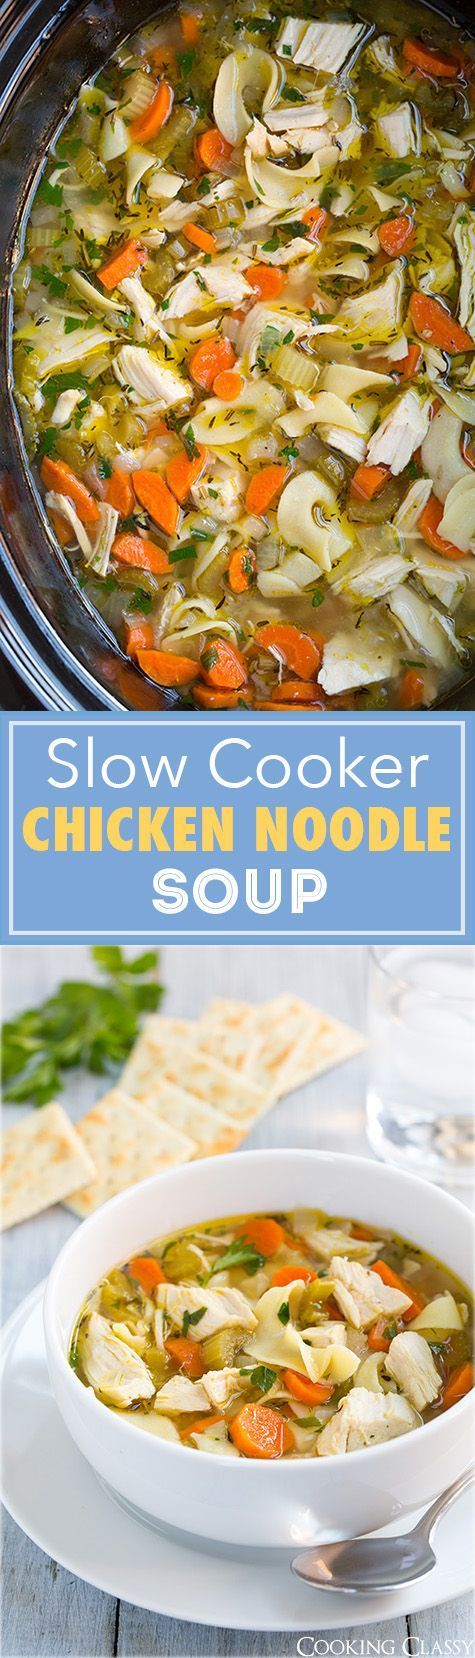 nice Slow Cooker Chicken Noodle Soup